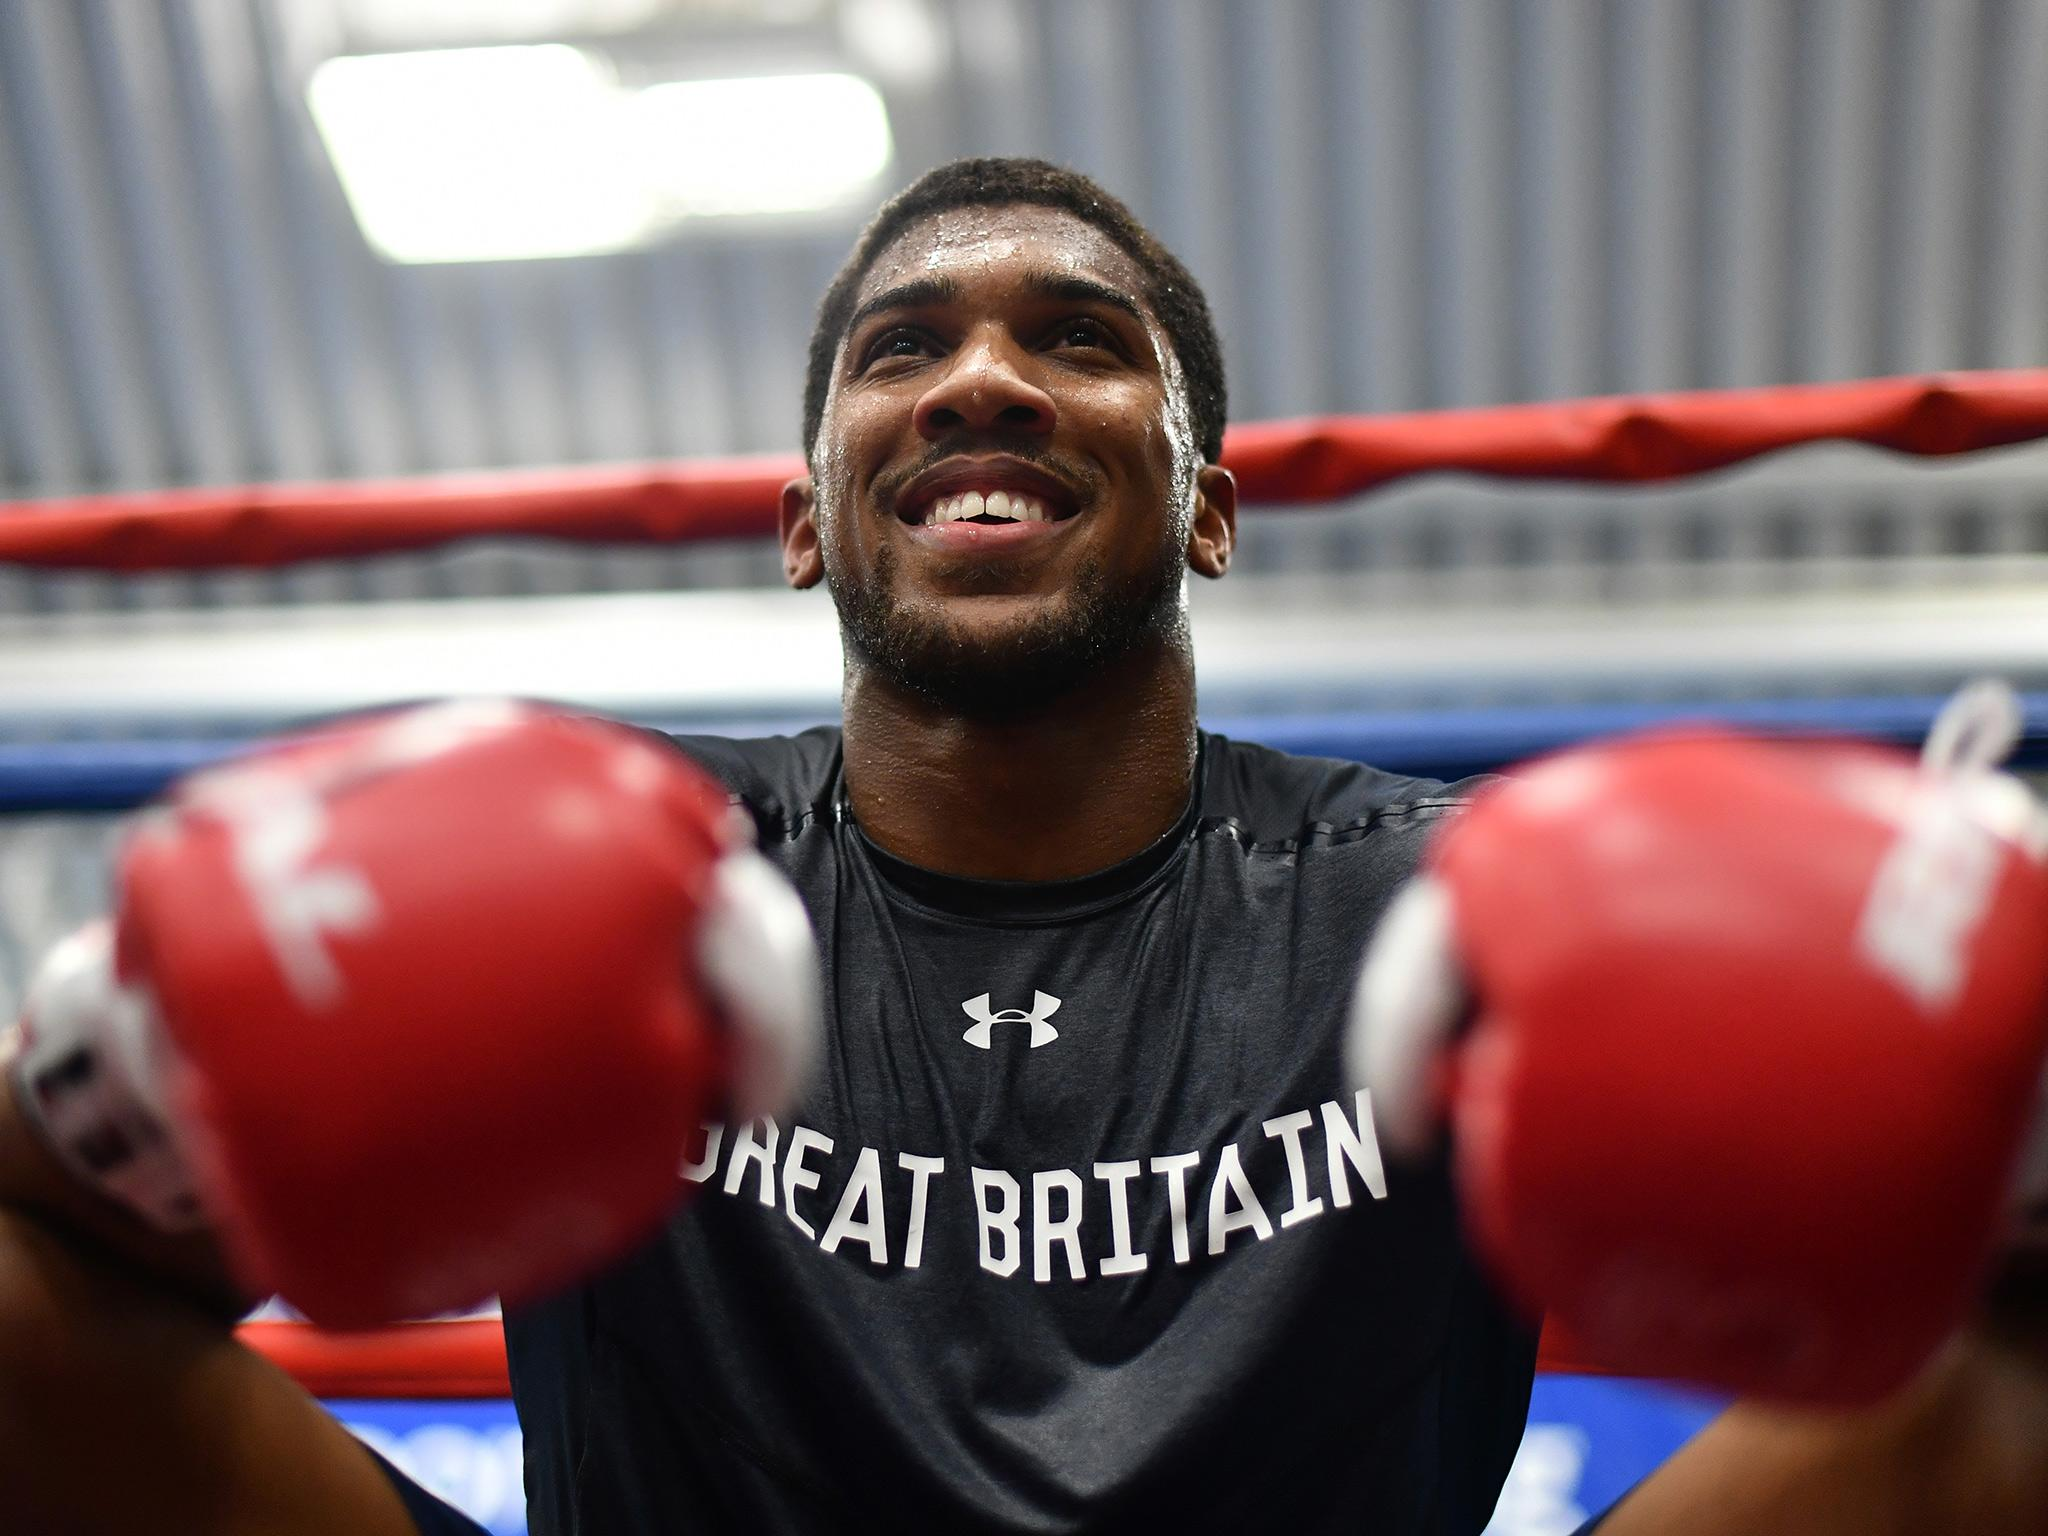 Anthony Joshua vs Wladimir Klitschko: Quotes and trash talk from the big  fight build-up | The Independent